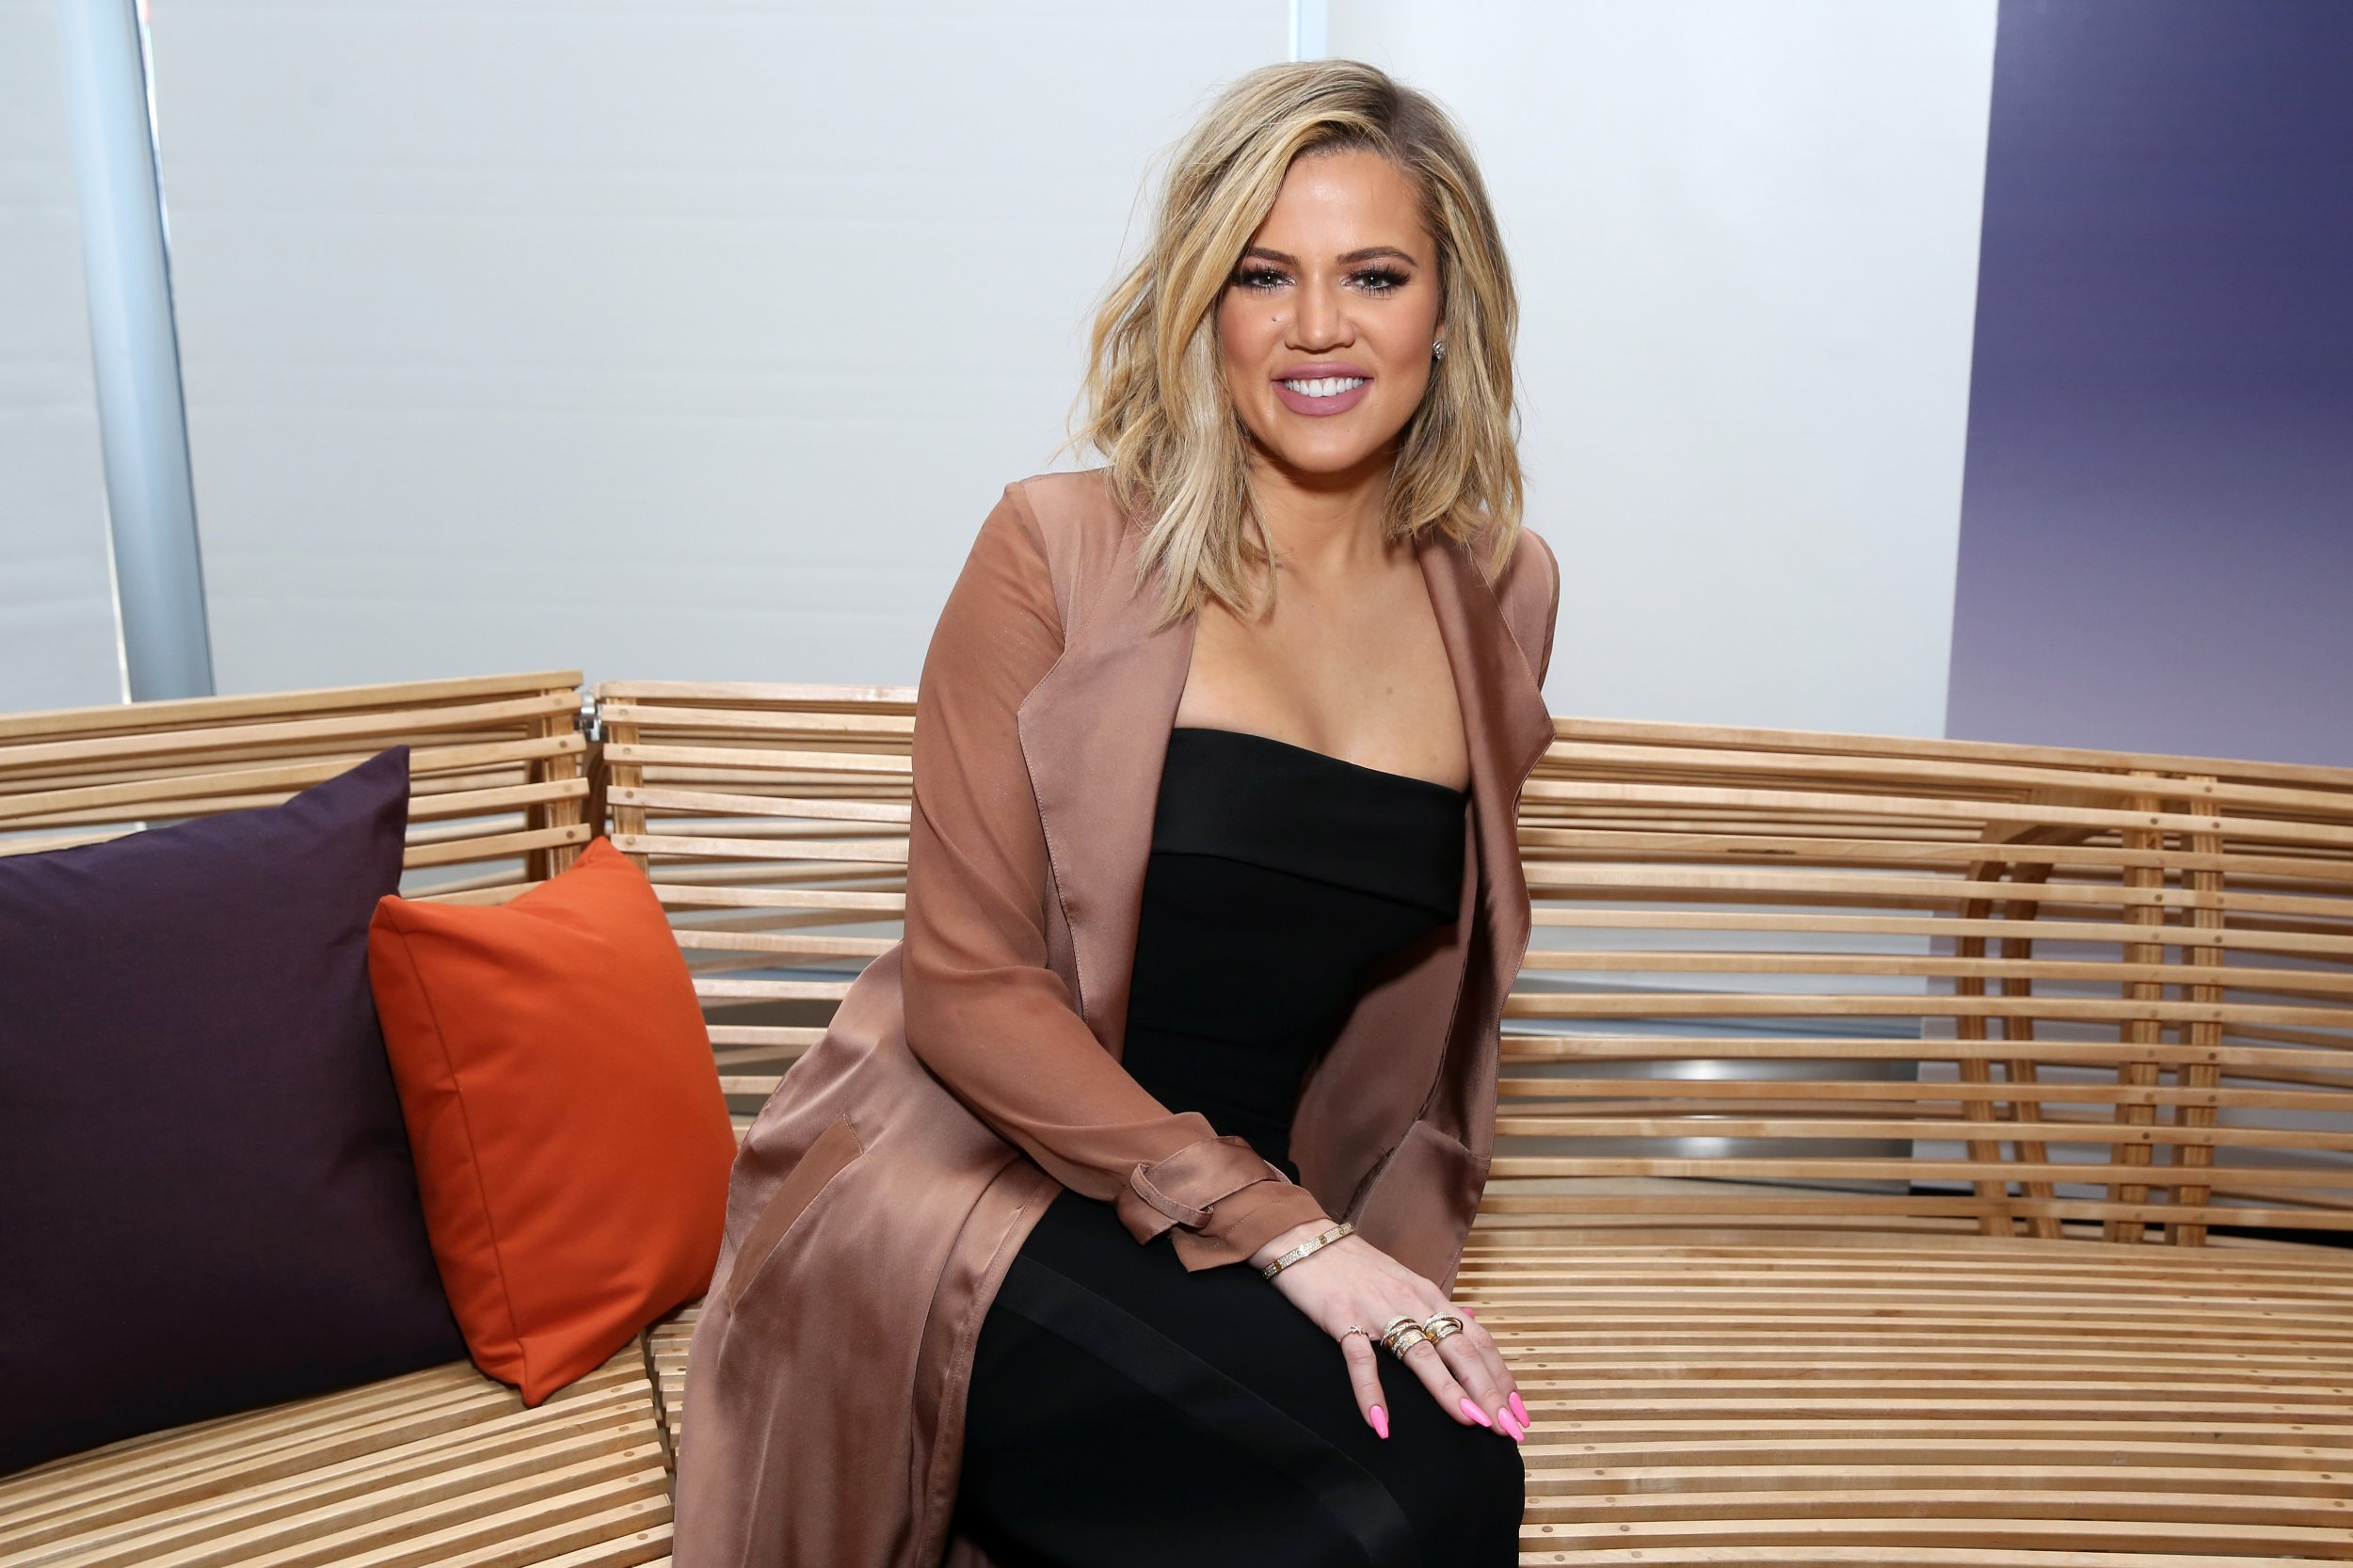 Khloe Kardashian confirms pregnancy?